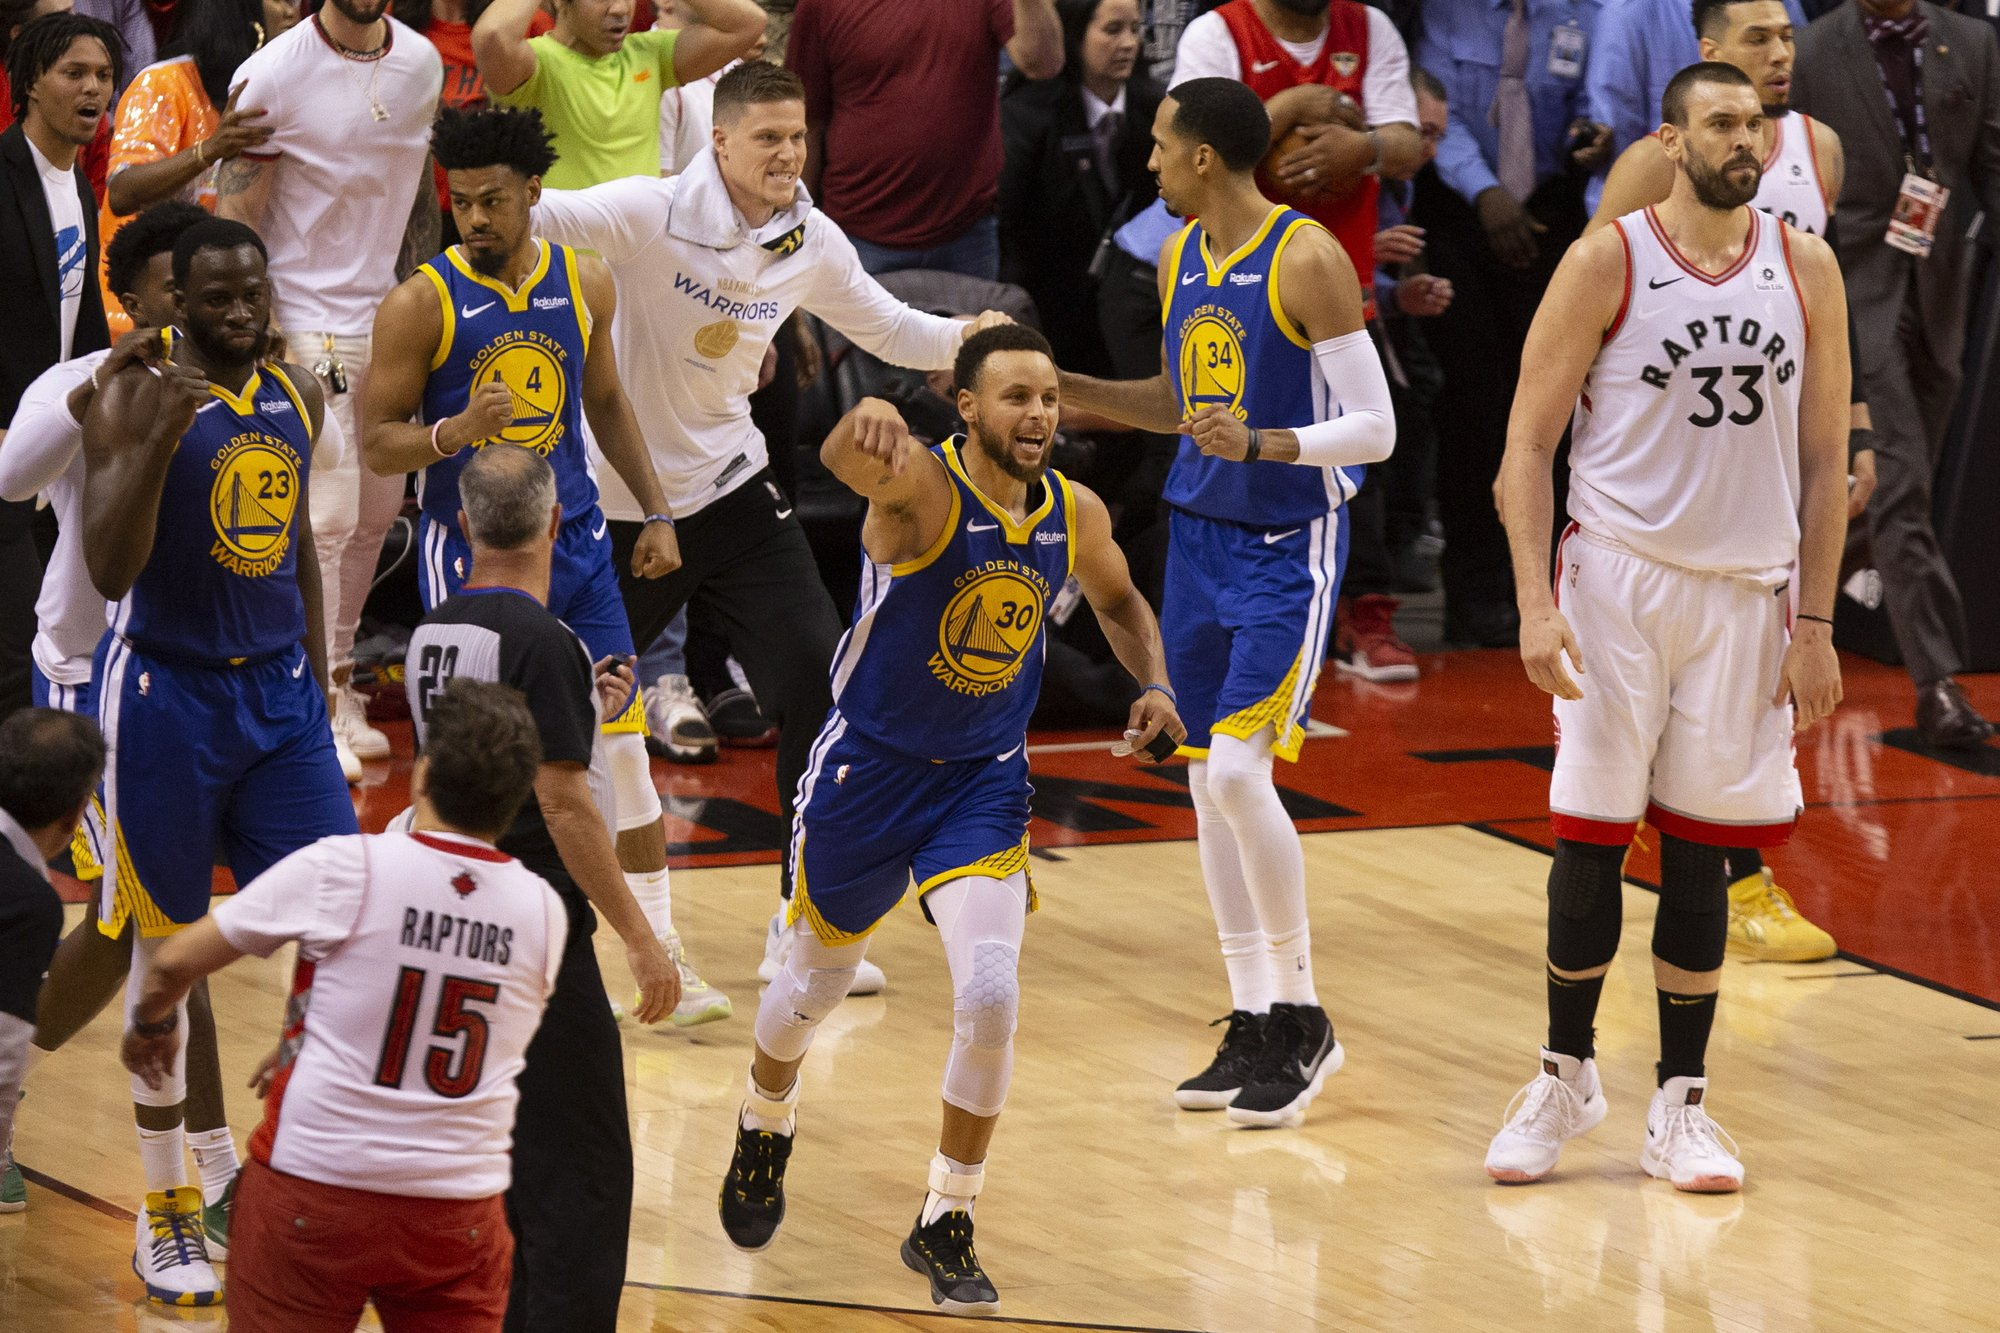 Antetokounmpo and Bucks face Curry and Warriors, seeking 4th straight win